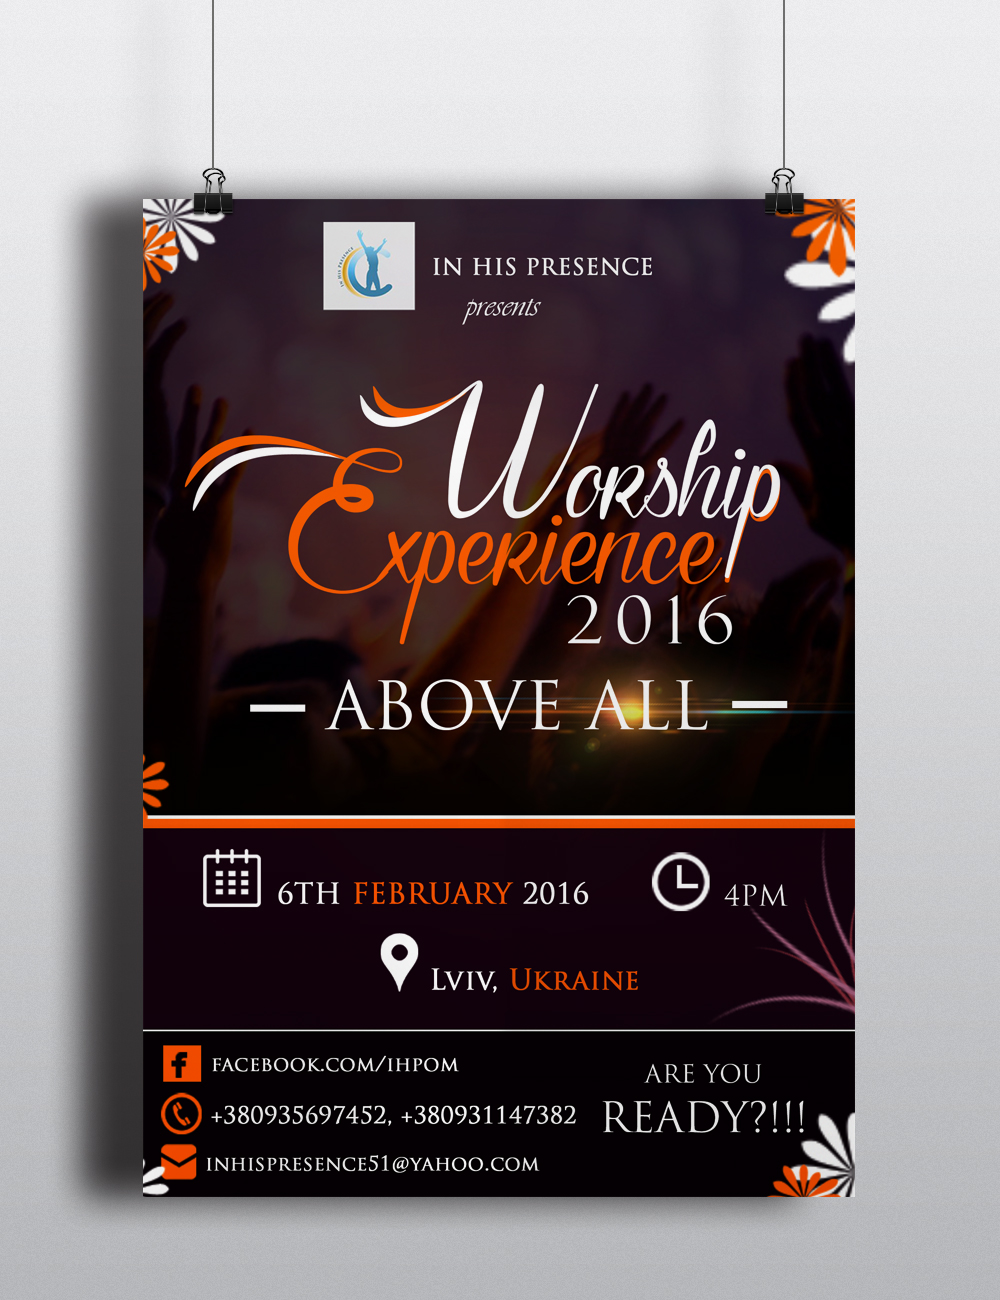 IN HIS PRESENCE WORSHIP EXPERIENCE FLYER DESIGN GHM The Best Graphics And Website Design